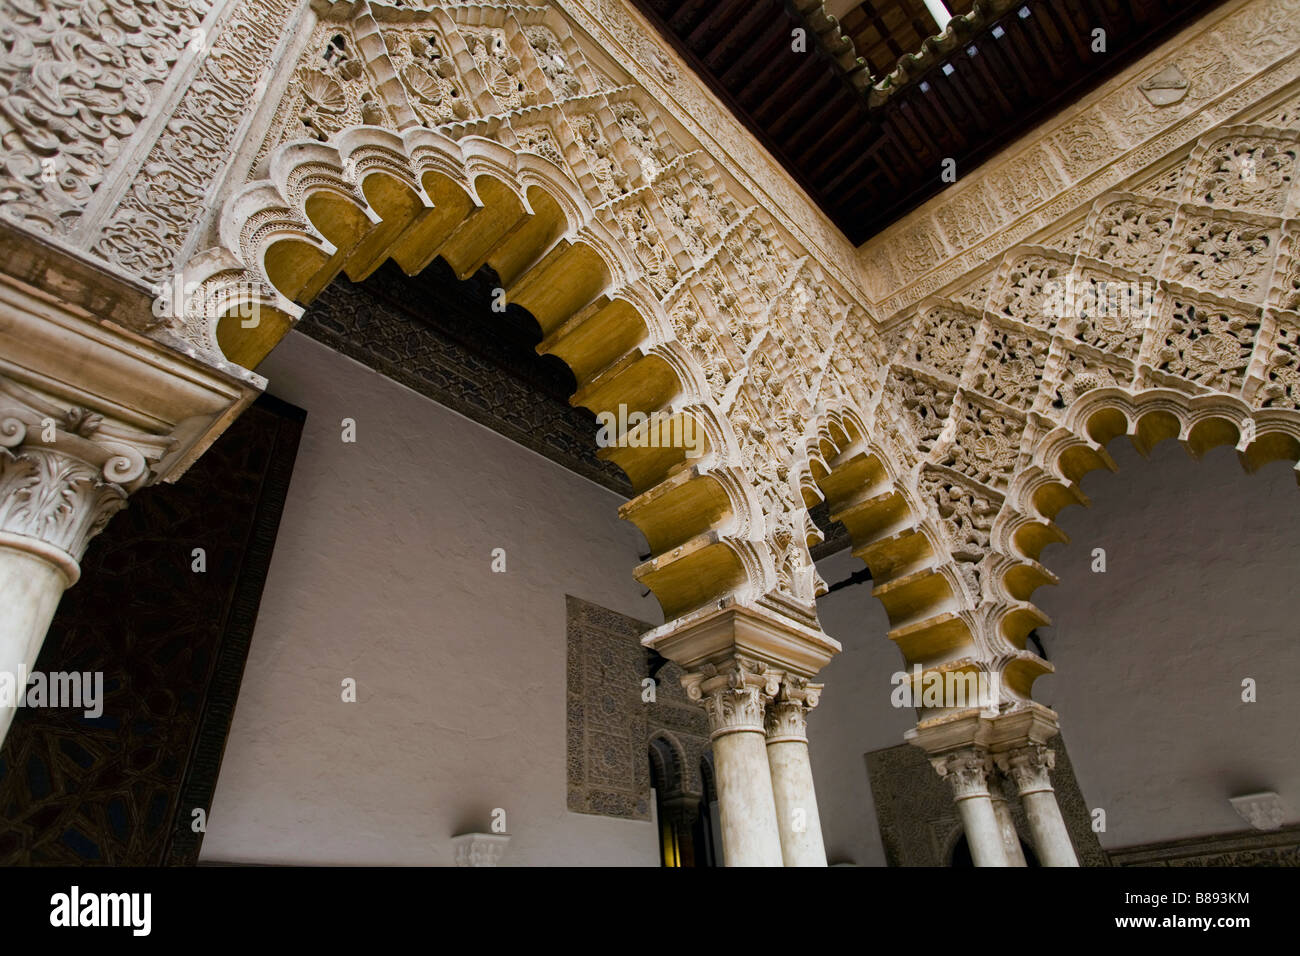 Architectural detail inside the Alcazar a Moorish inspired palace in Seville Spain - Stock Image